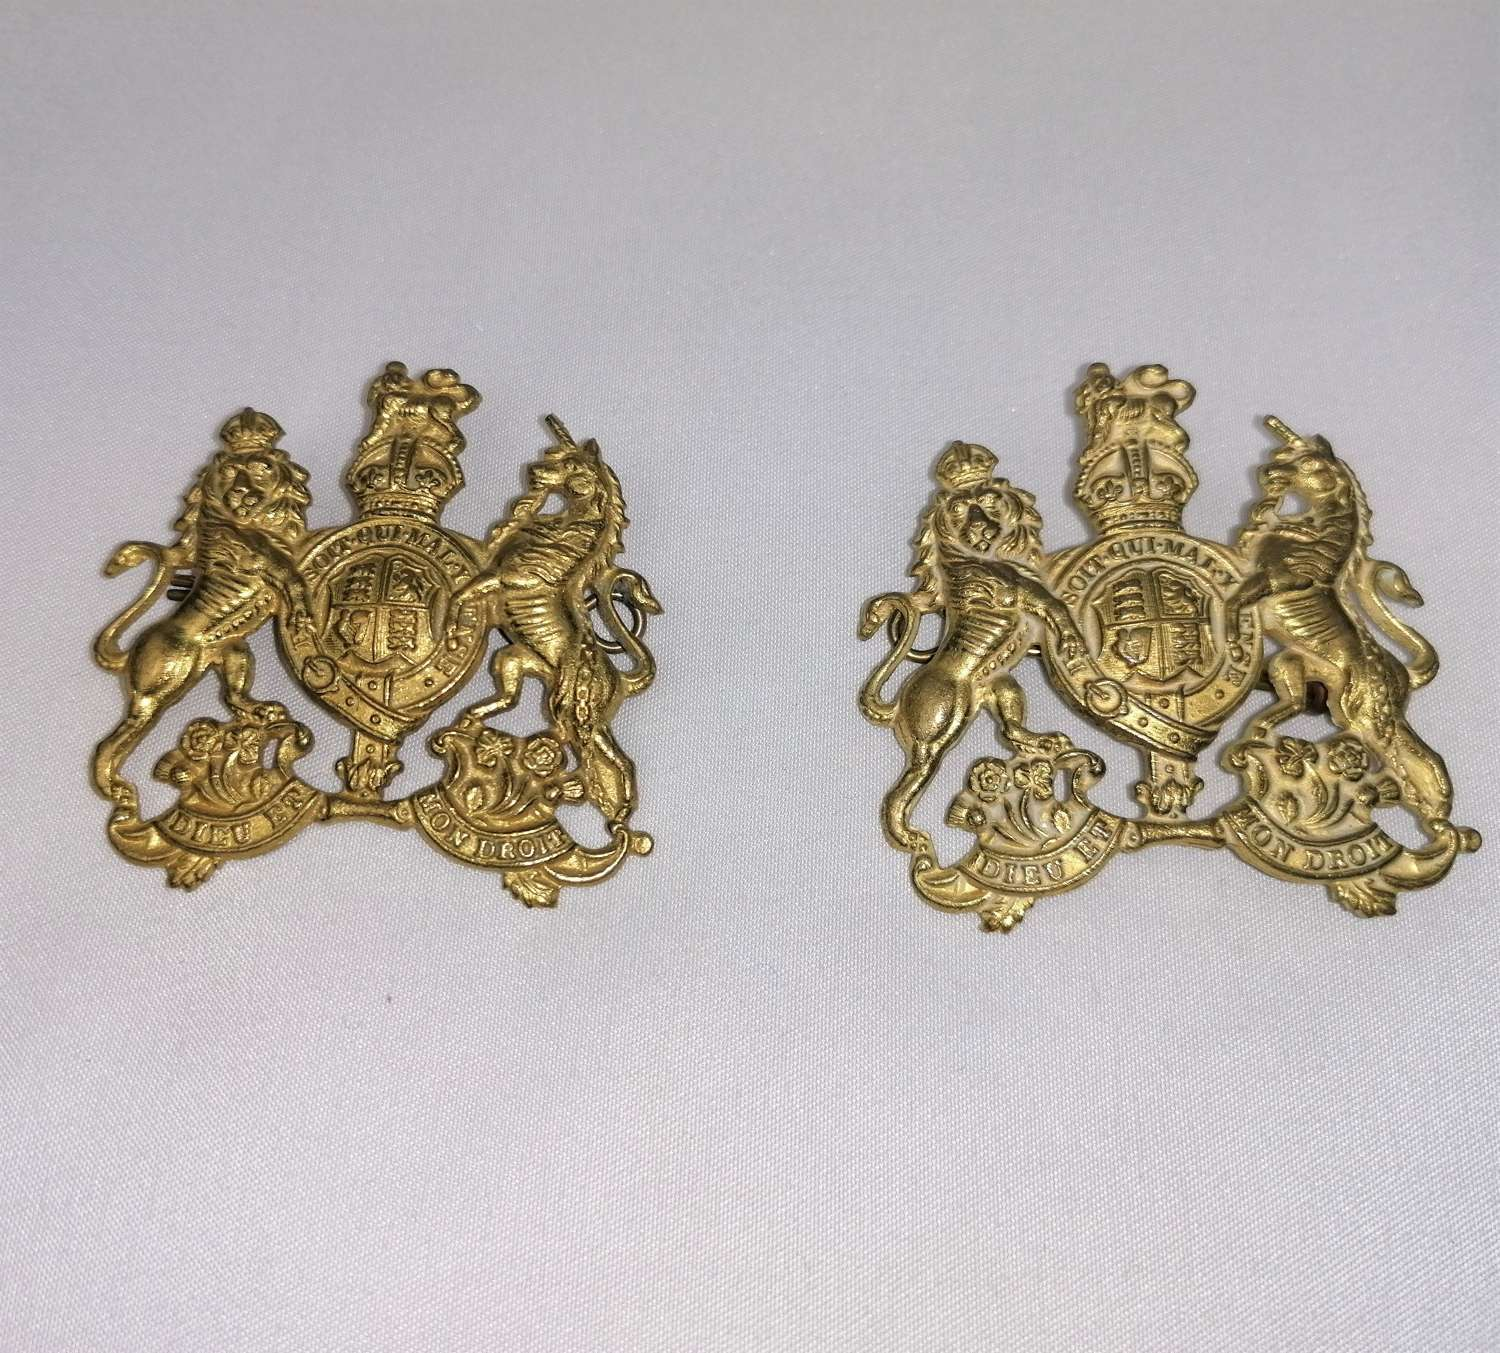 British RSM Warrant Officer Gilt Brass Sleeve Badges